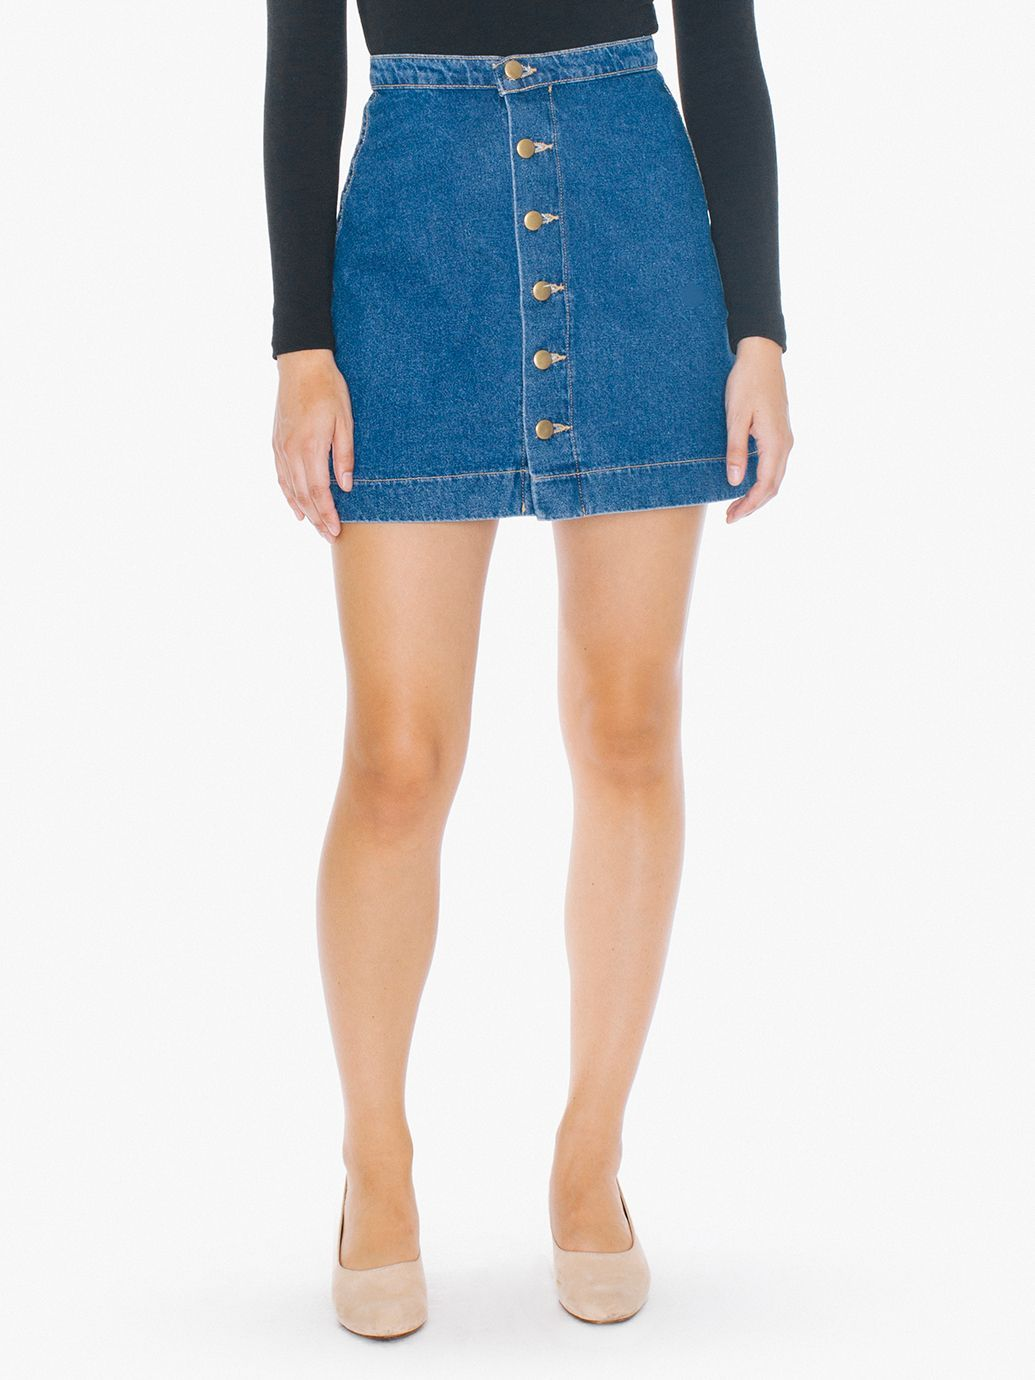 d6e9b04b3 The Denim Button Front A-Line Mini Skirt is a denim mini skirt featuring a  6-button front, high waist and A-line design. Both on-trend and classic, ...